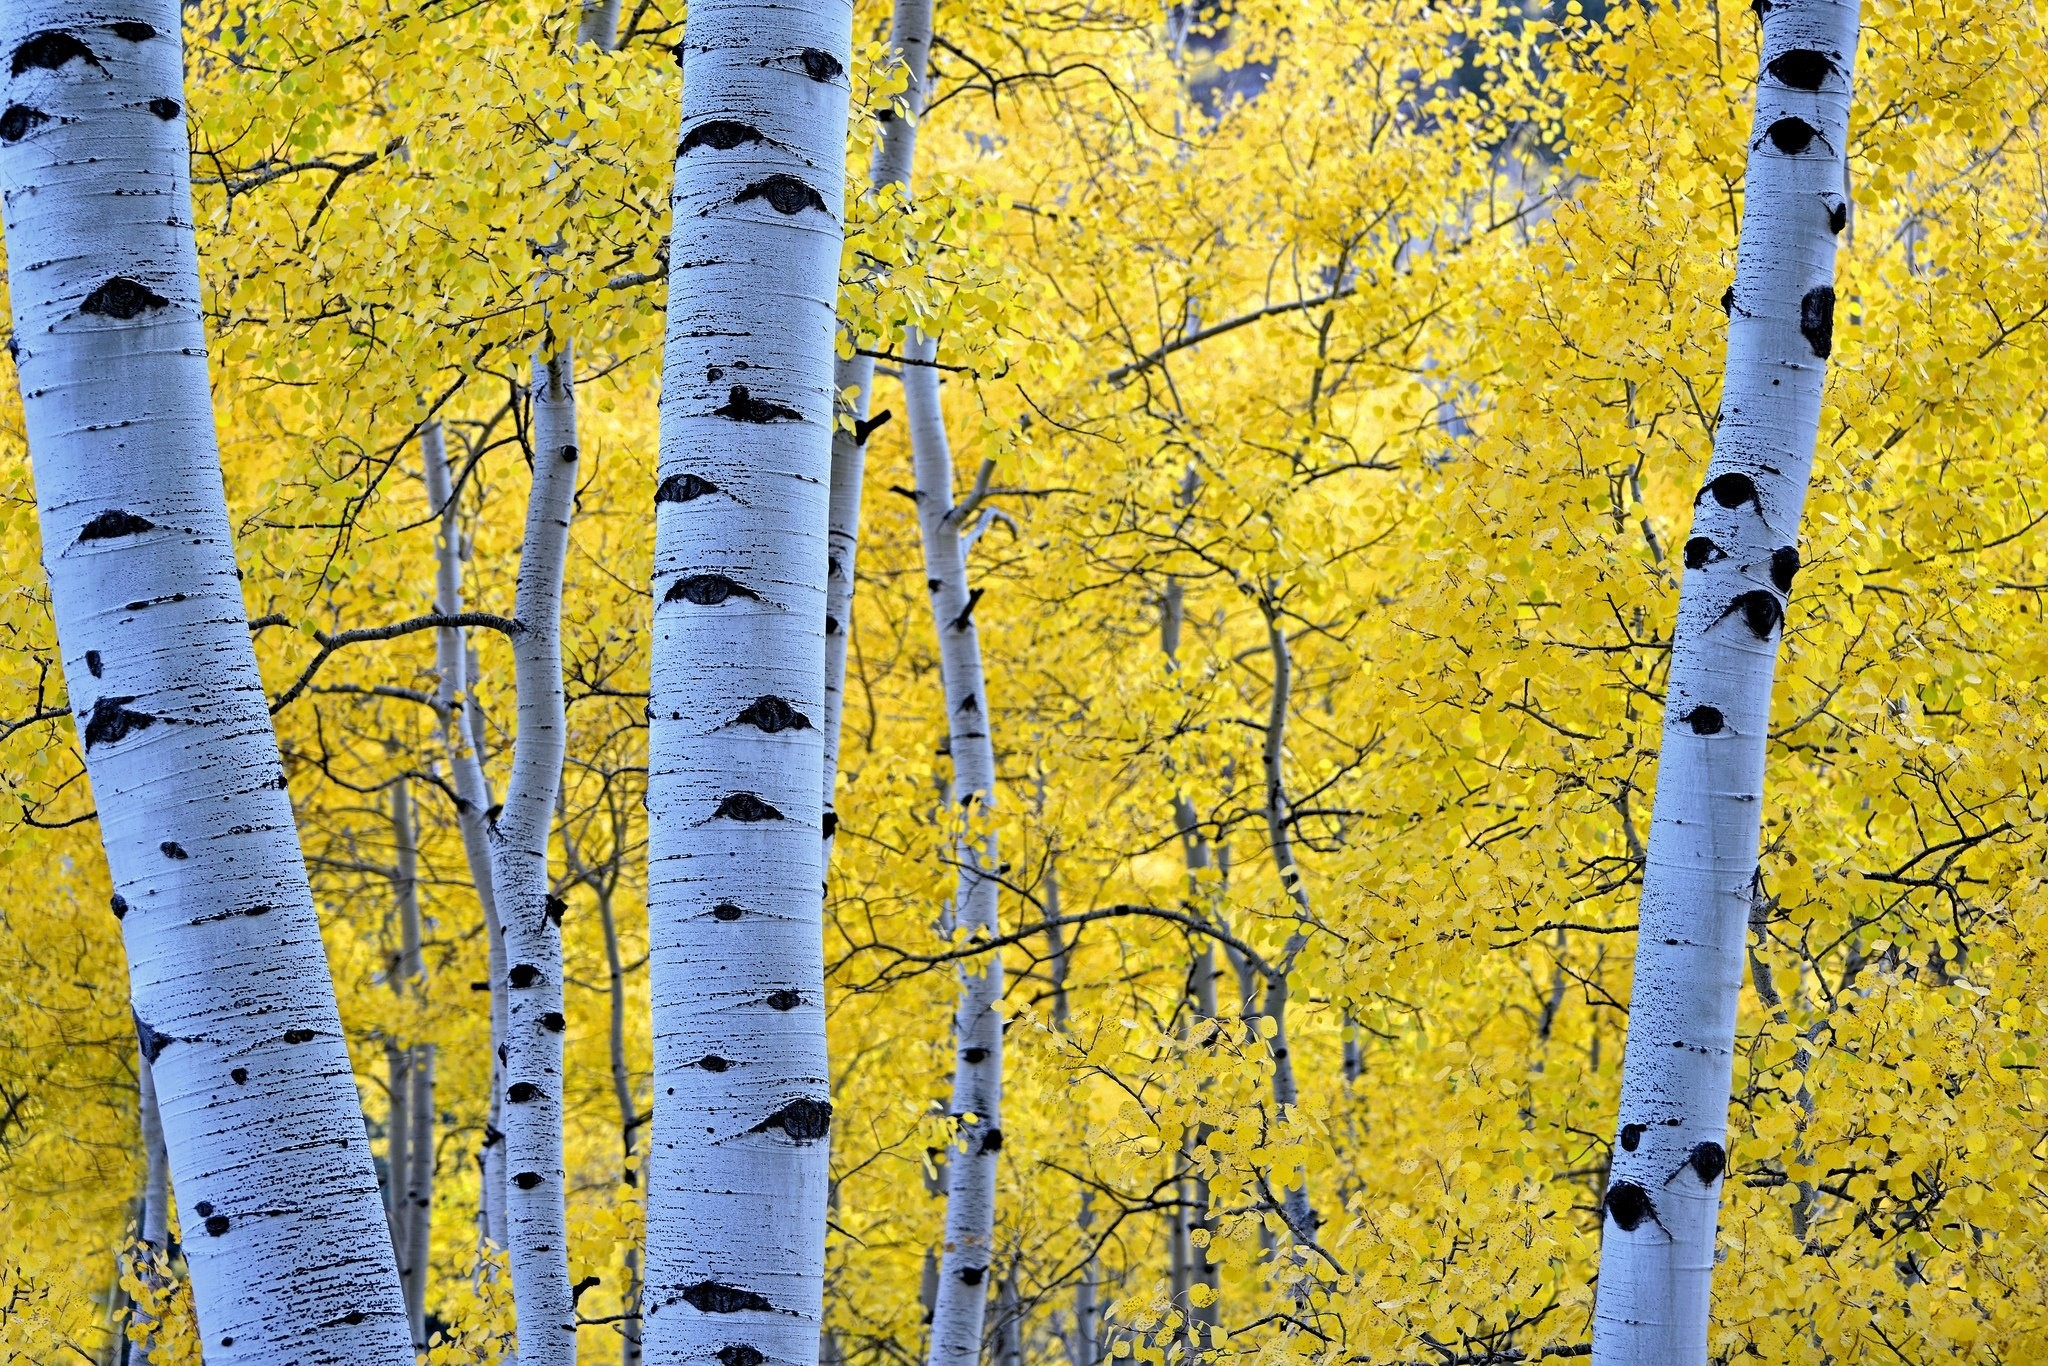 Res: 2048x1366, Autumn Seasons Trunk tree Branches Foliage Birch Nature forest wallpaper |   | 599130 | WallpaperUP